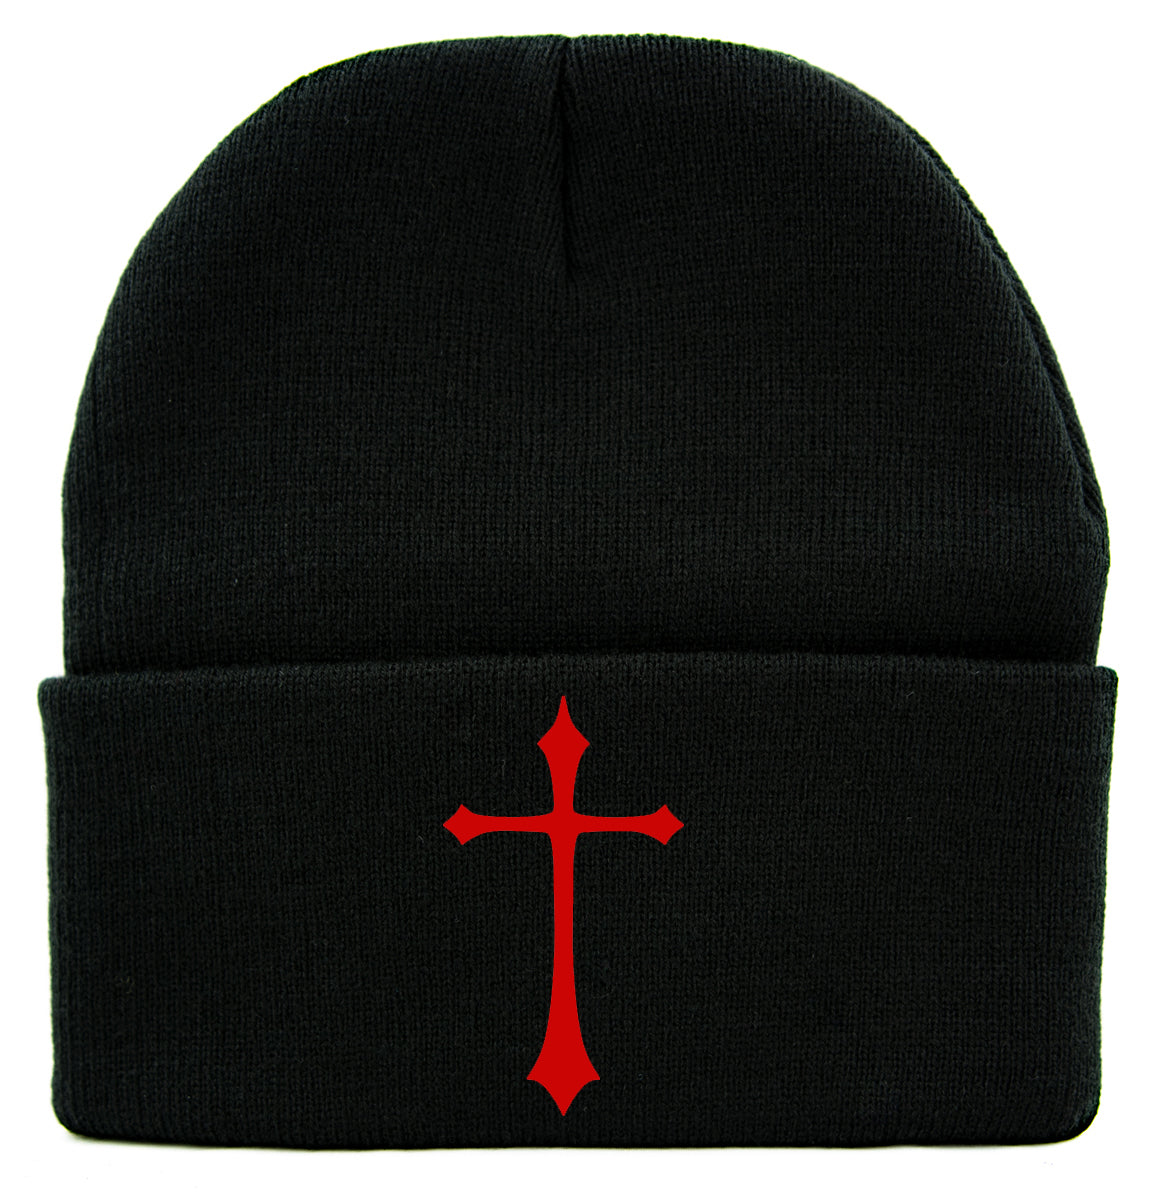 Red Medieval Holy Gothic Cross Cuff Beanie Knit Cap Occult Alternative Clothing